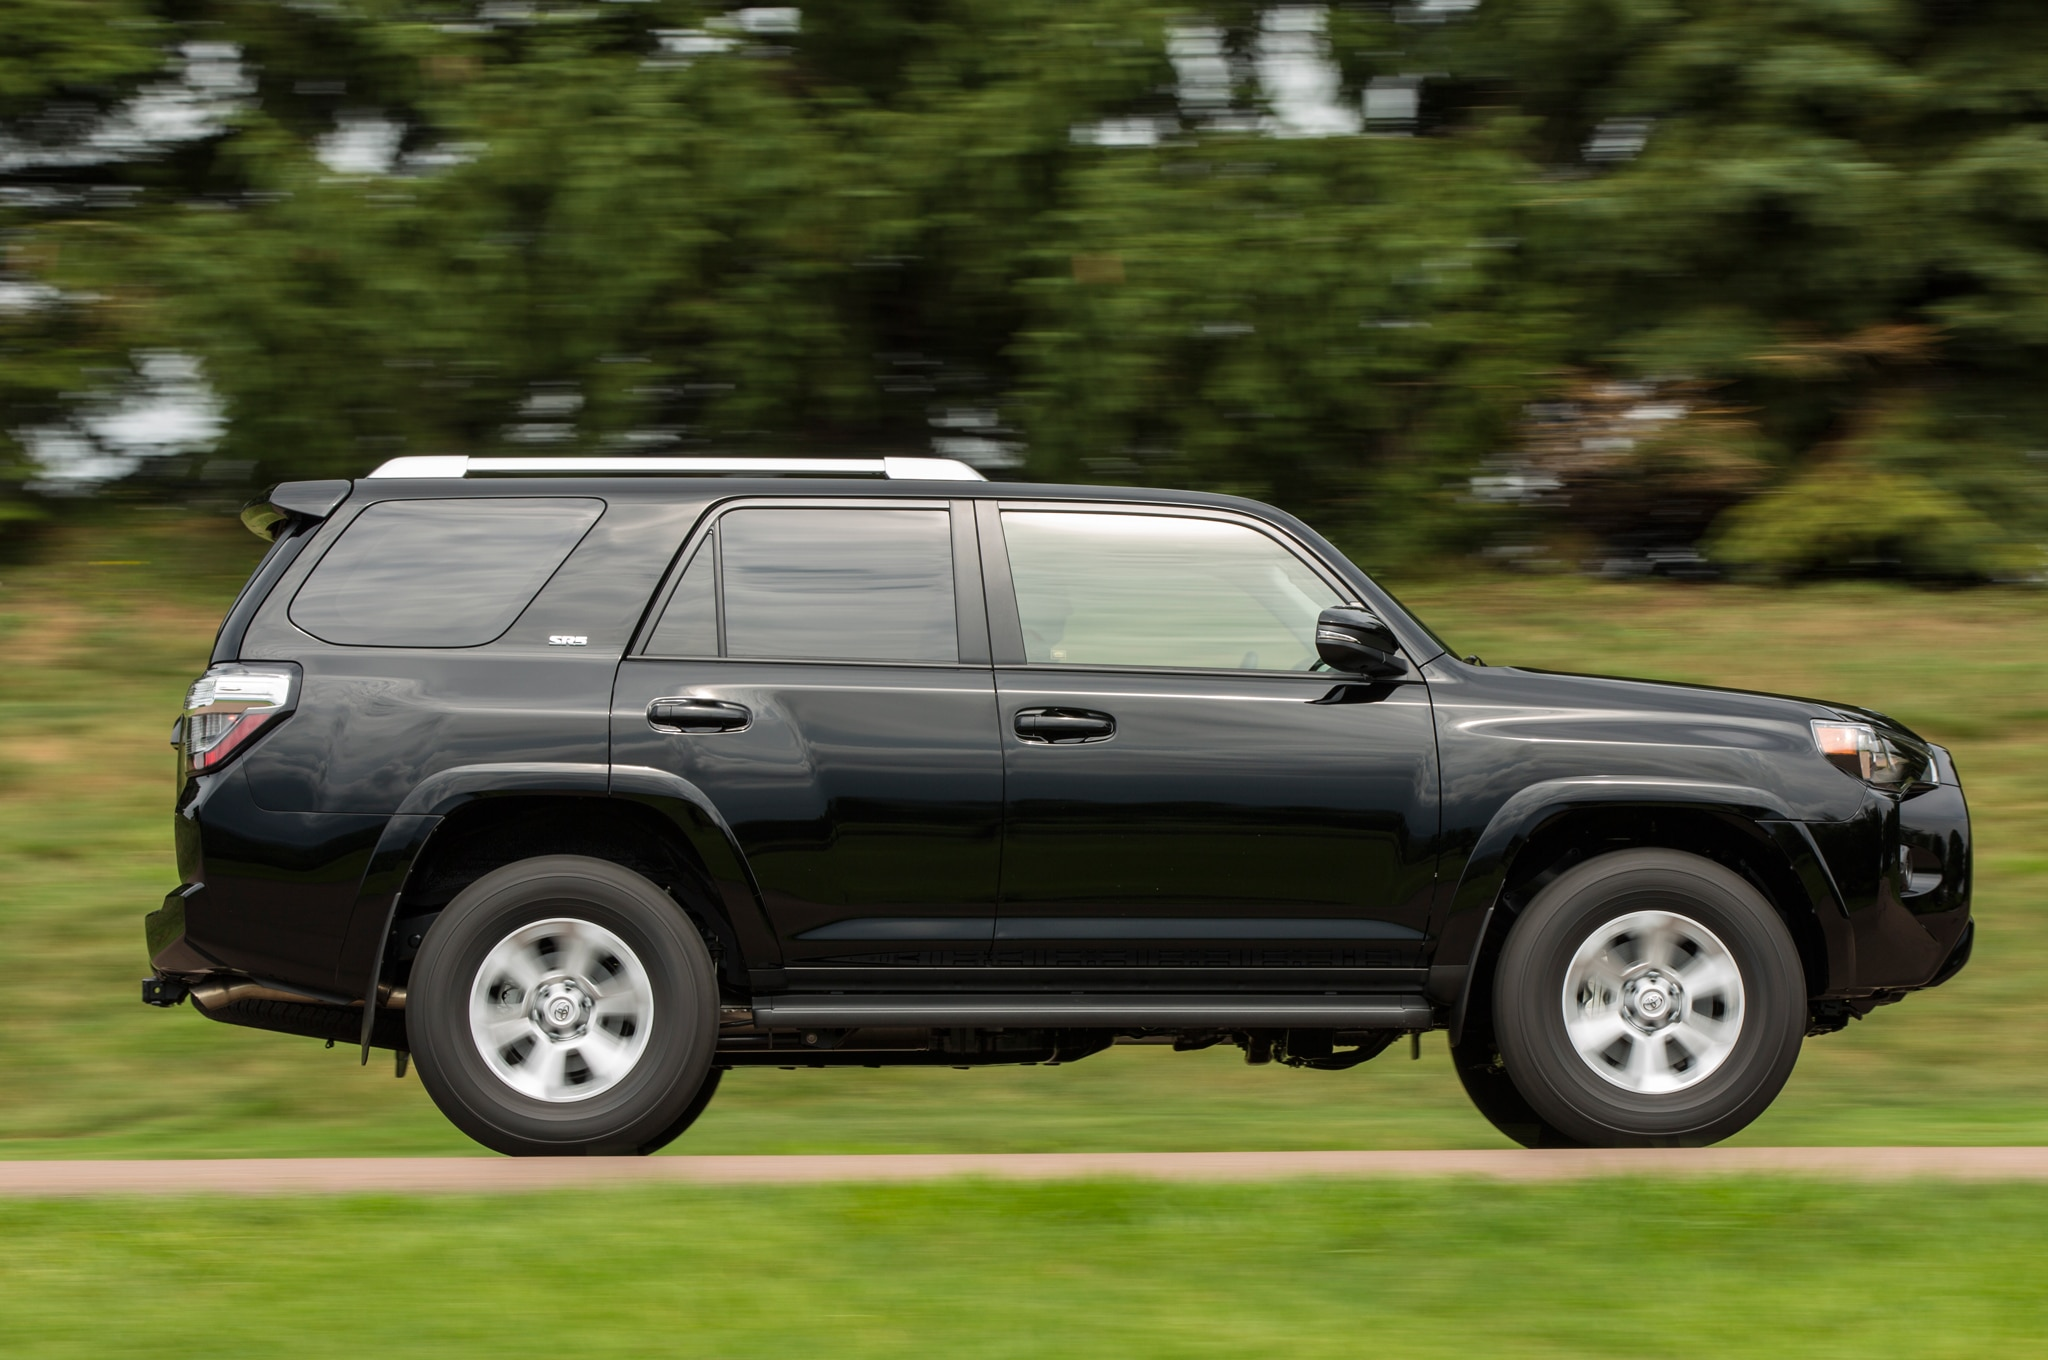 2014 Toyota 4runner Discounted In Celebration Of 30th